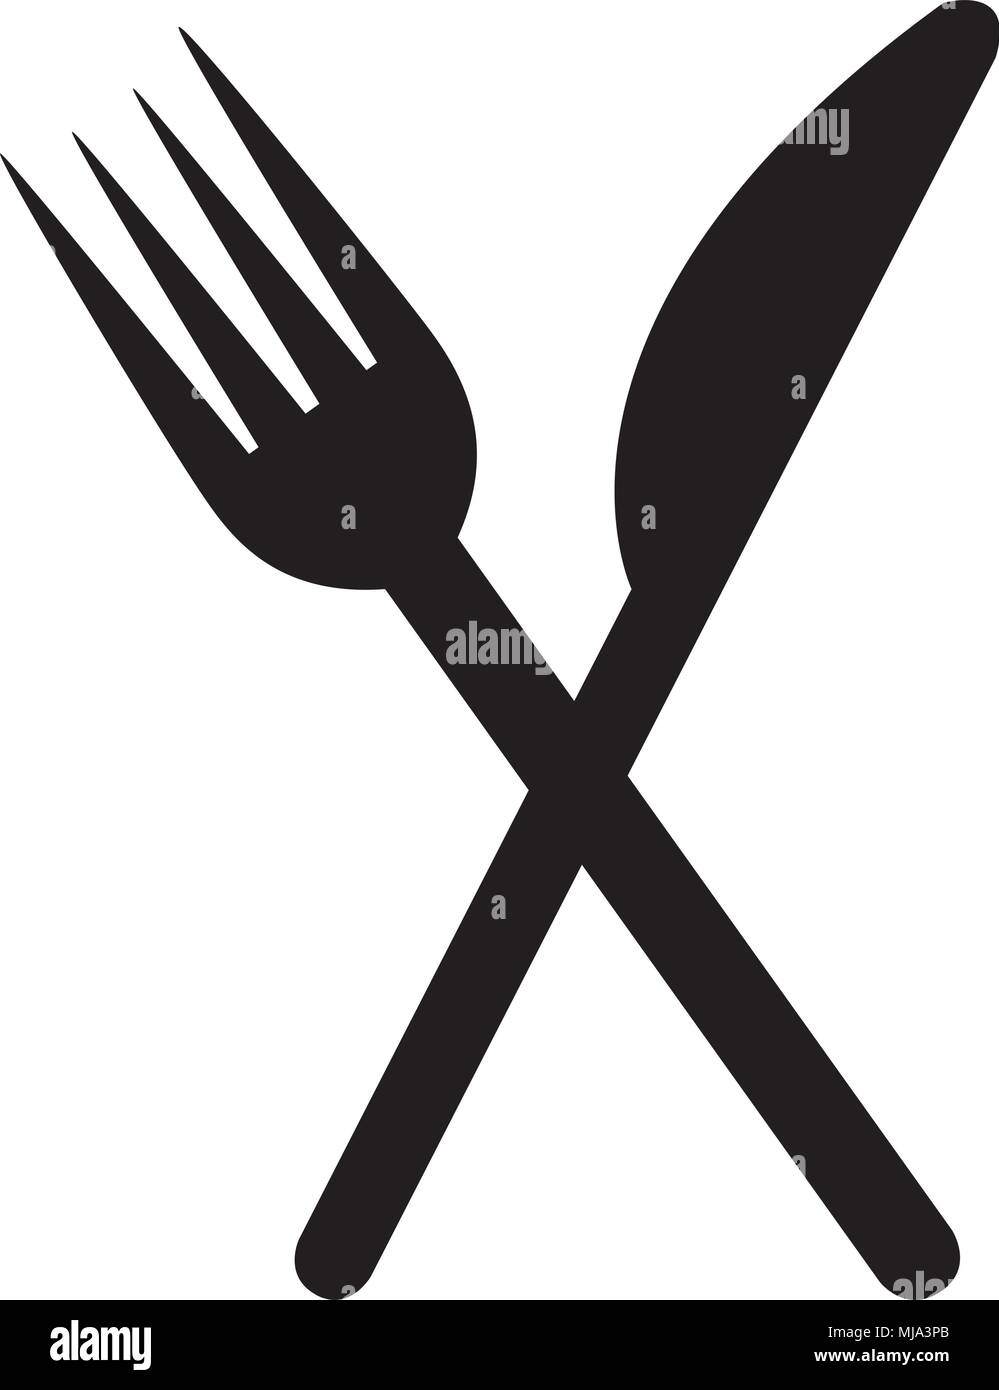 Restaurant Fork And Knife Symbol Pictogram Design Vector